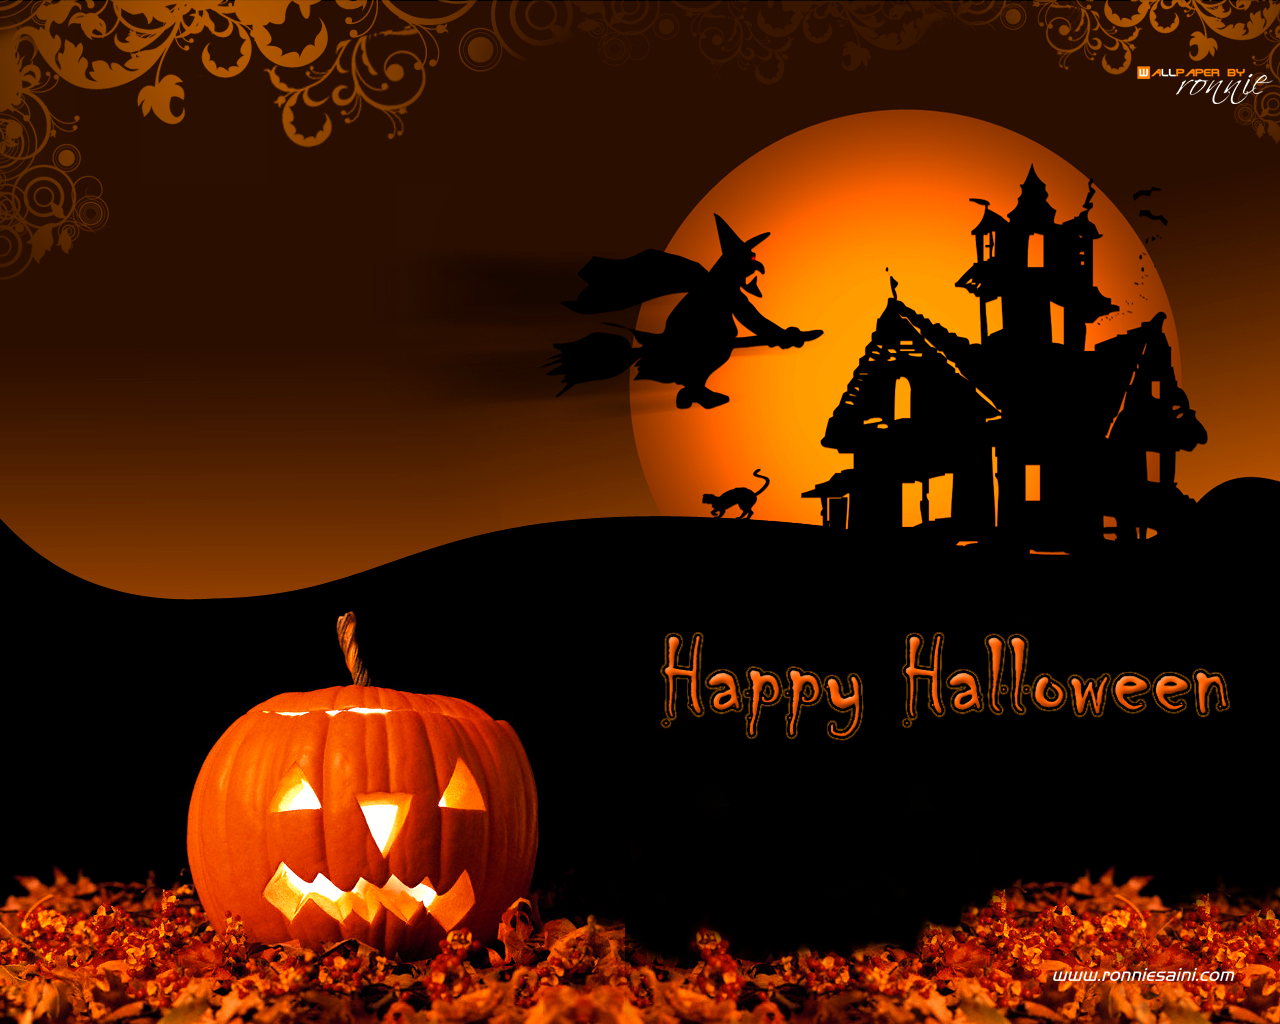 Hd Wallpapers Hd Backgrounds: Wallpapers HD: Halloween Wallpapers